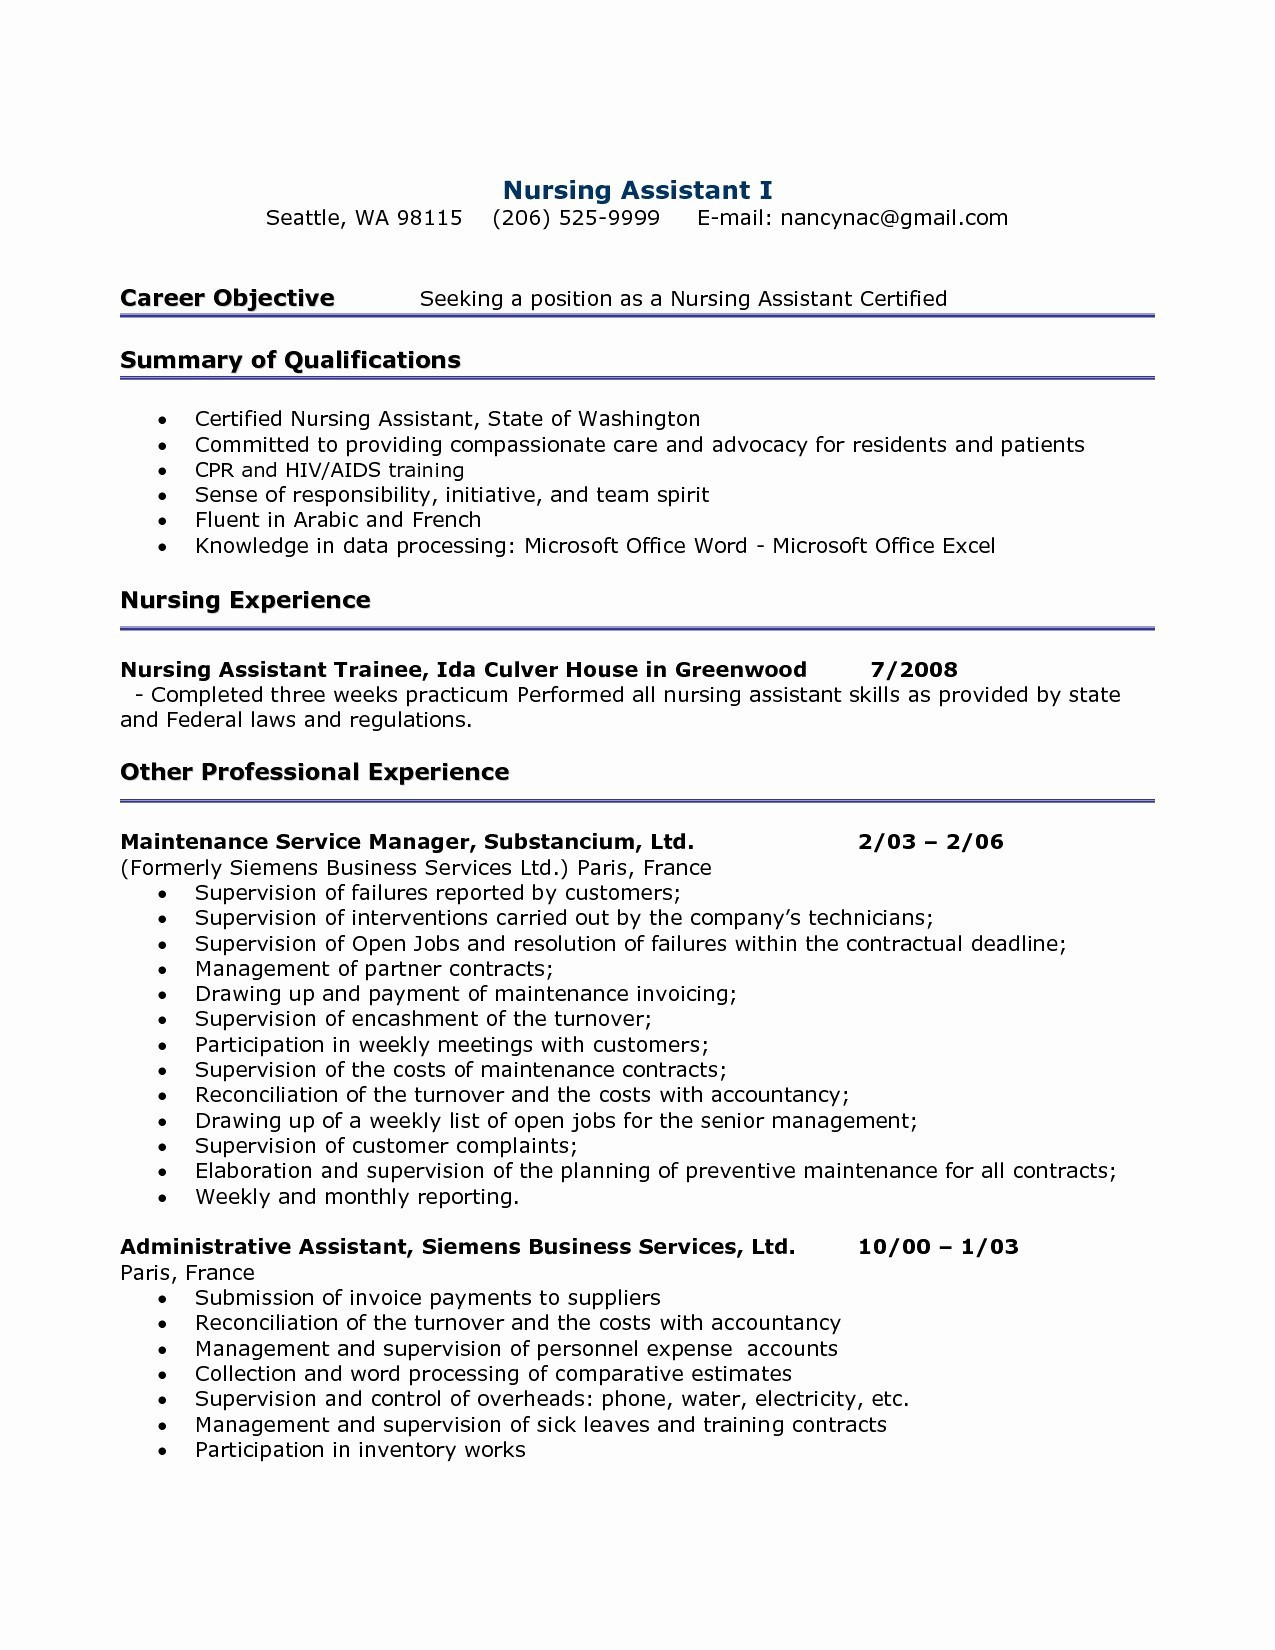 Free Sample Reference Letter Template - A Great Resume New Resume for It Job Fresh Best Examples Resumes